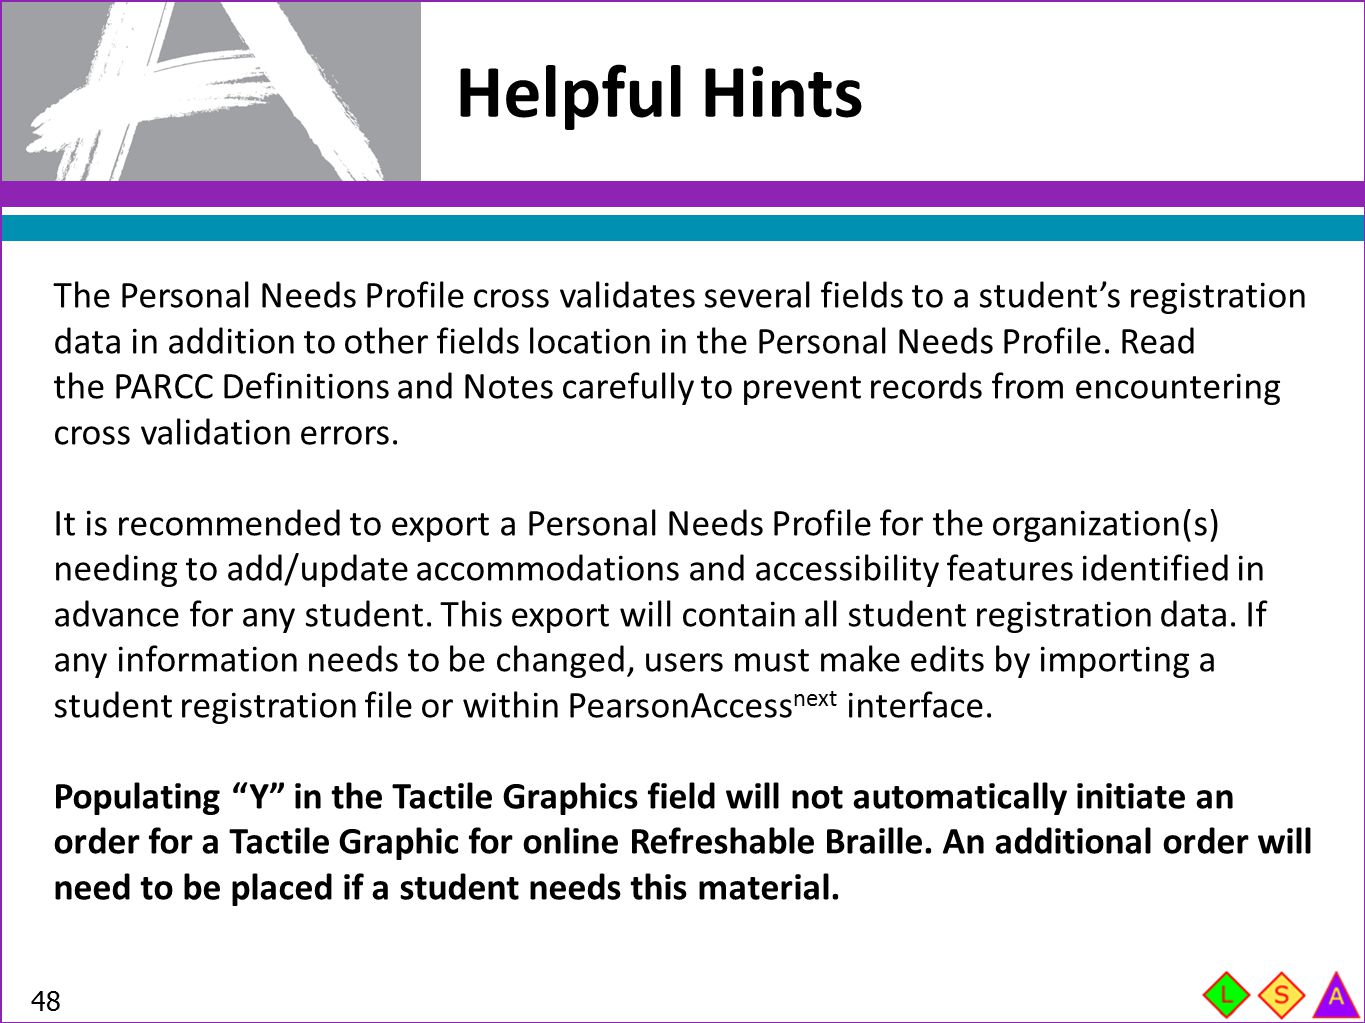 Helpful Hints 48 The Personal Needs Profile cross validates several fields to a student's registration data in addition to other fields location in th